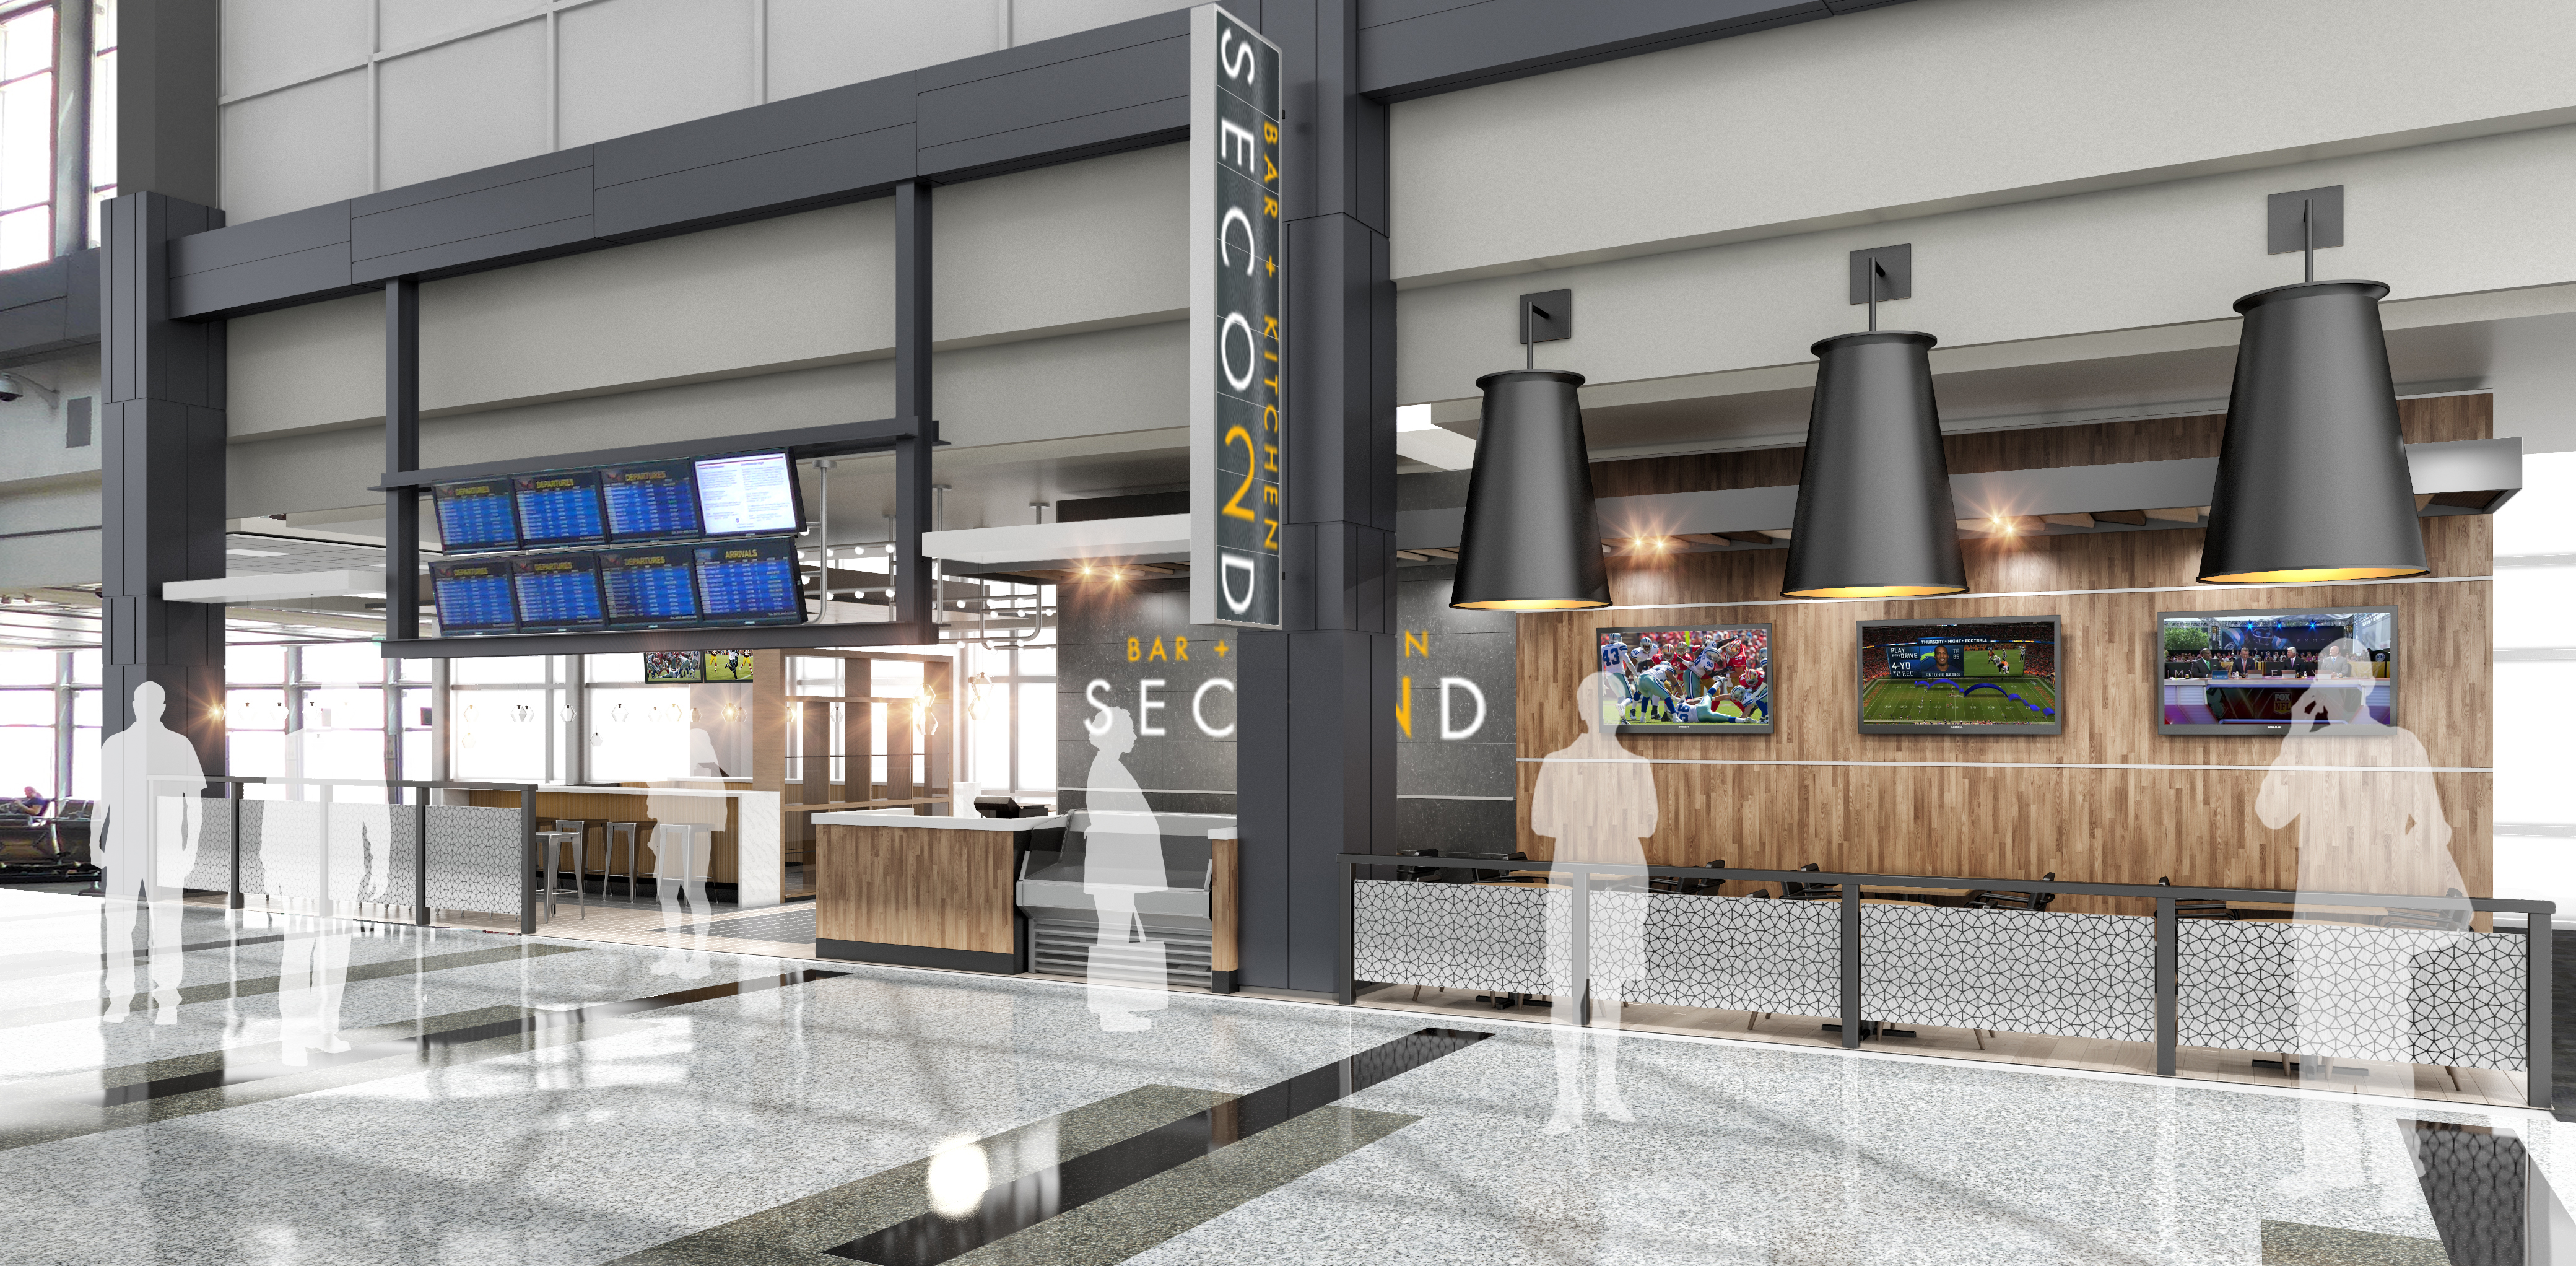 A Guide to Austin Airport\'s Upcoming New Dining Restaurants and ...